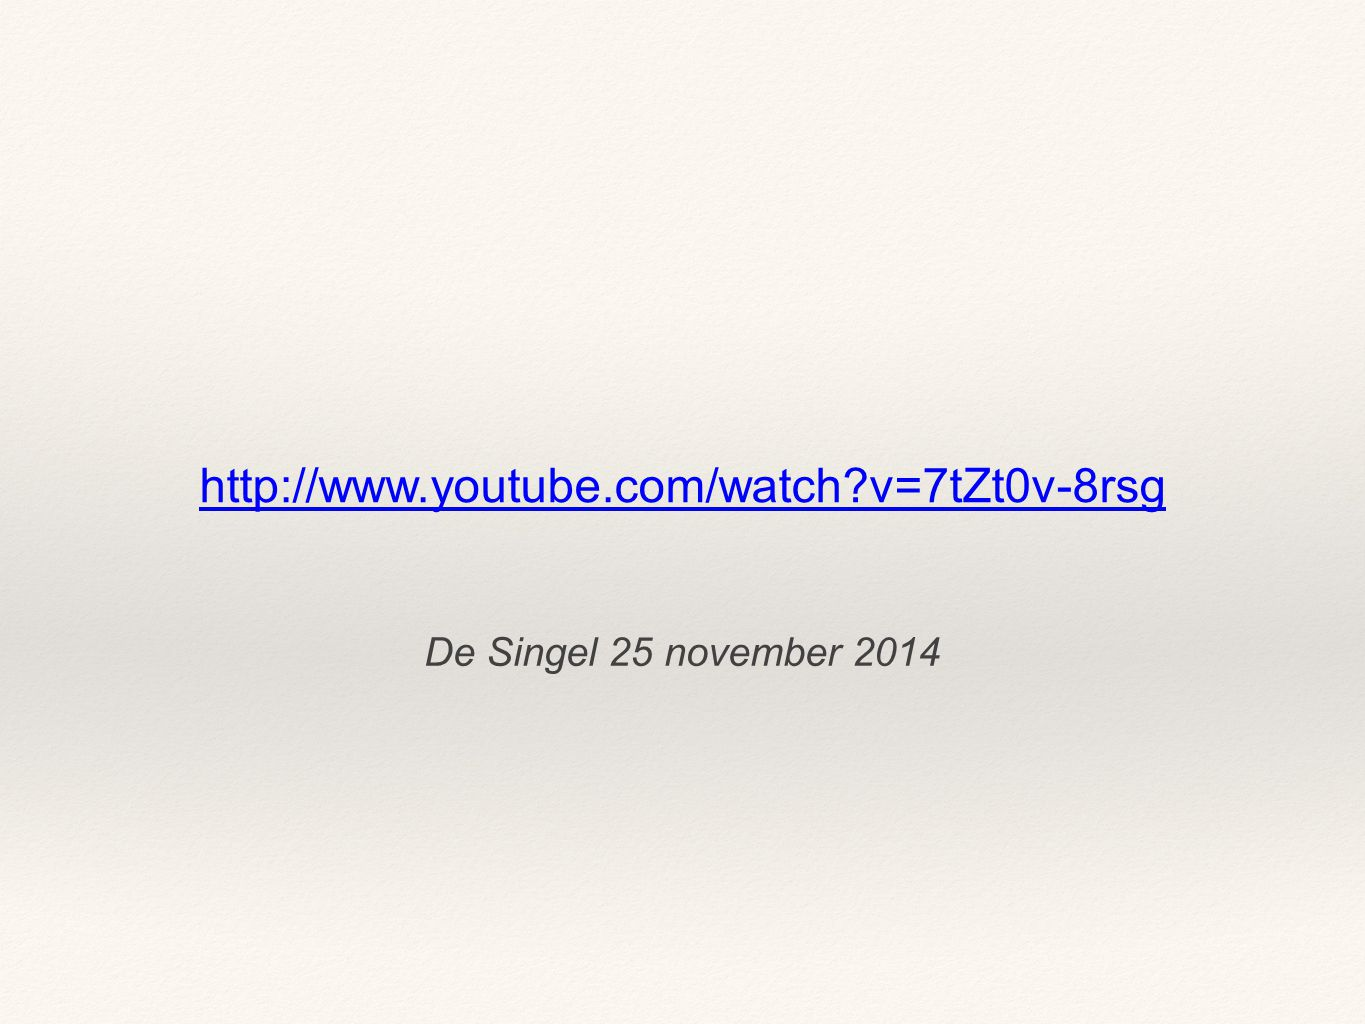 http://www.youtube.com/watch v=7tZt0v-8rsg De Singel 25 november 2014